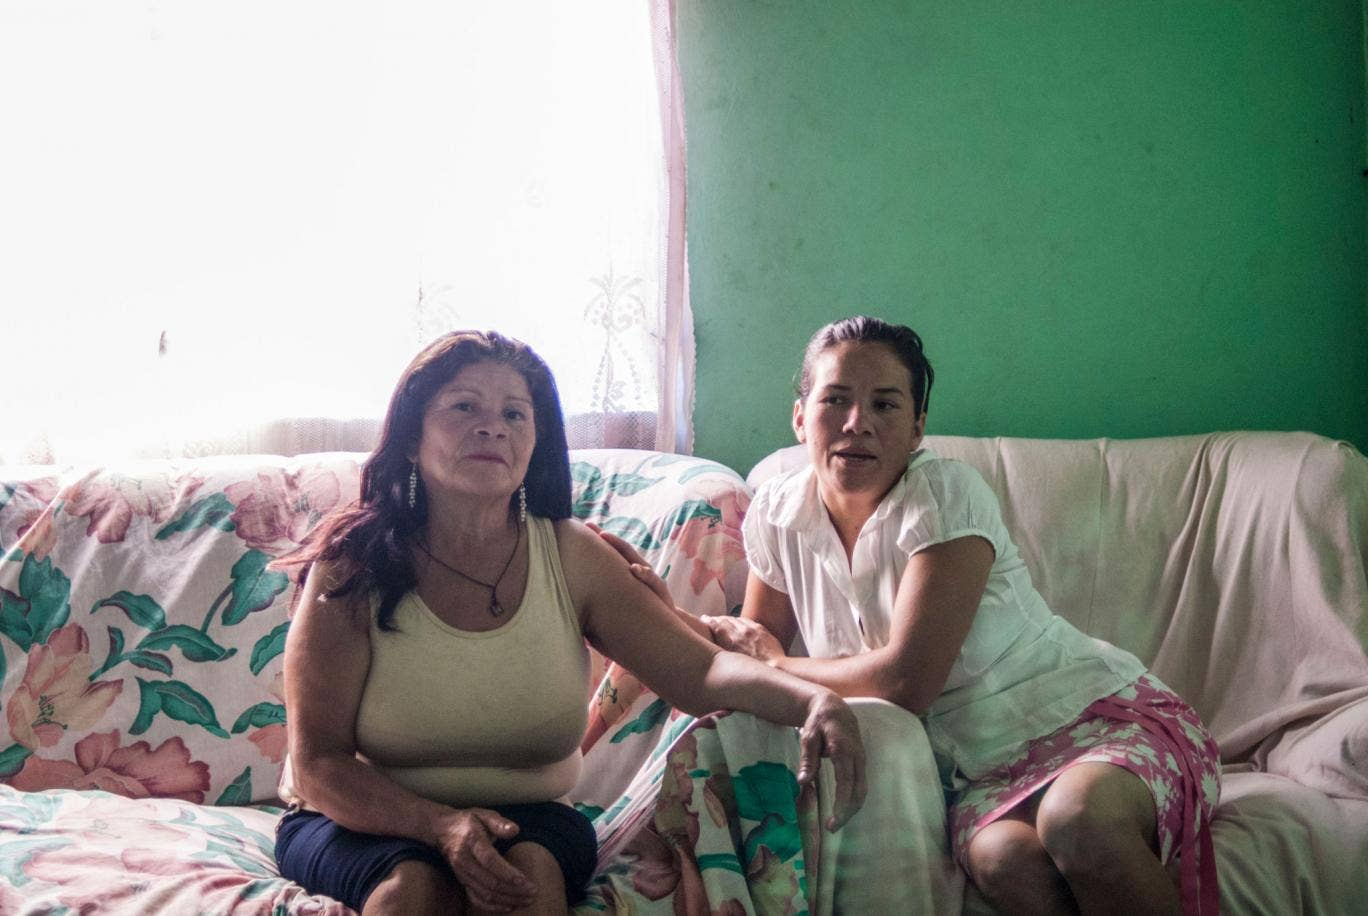 Josefina Flores, left, with her daughter Xiomara. Xiomara, now 32, was taken from Josefina when bshe was just one-anda- half, in 1984. They did not see each other again until 2 December 2013